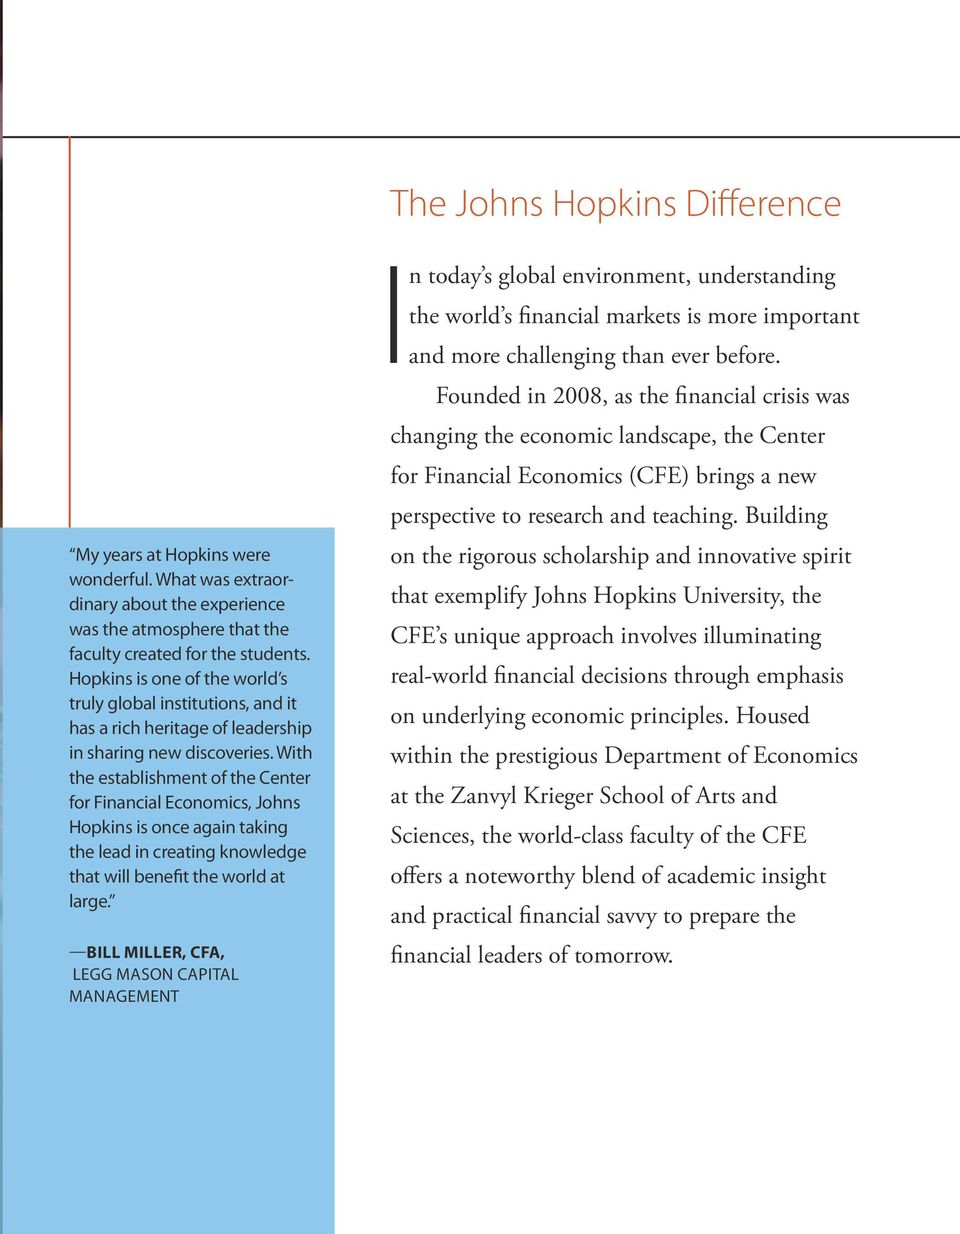 With the establishment of the Center for Financial Economics, Johns Hopkins is once again taking the lead in creating knowledge that will benefit the world at large.